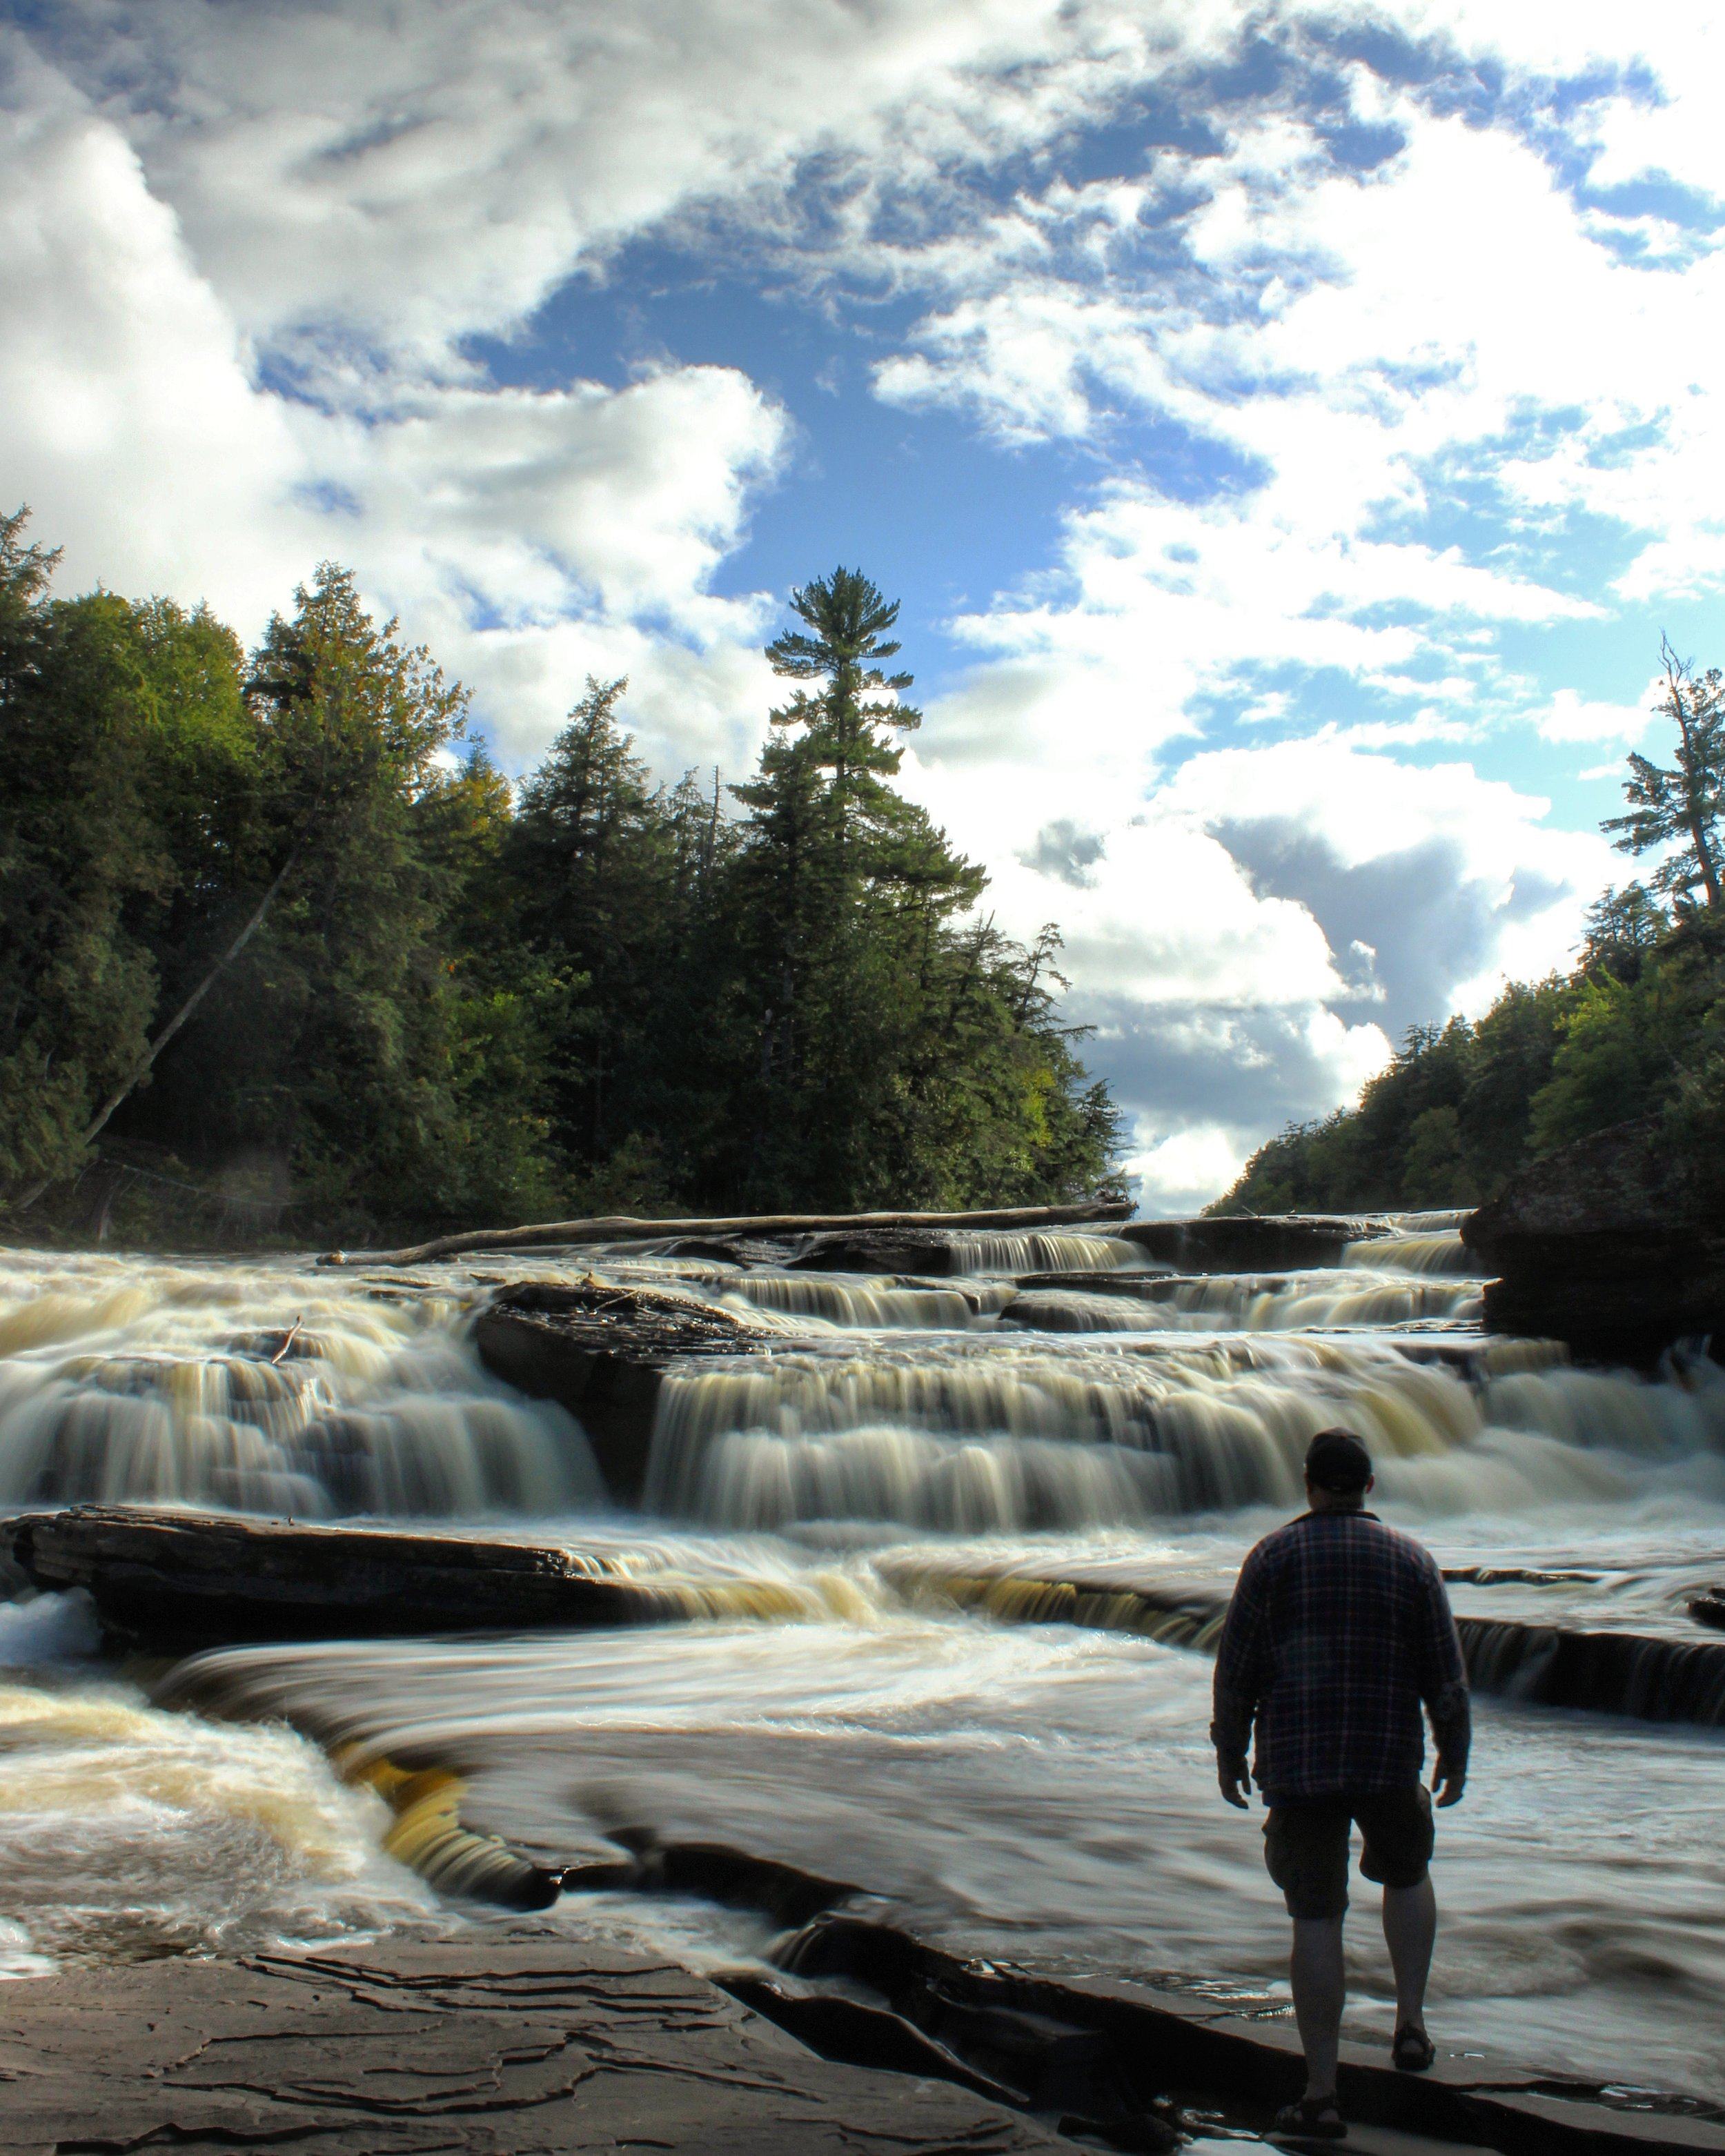 The Presque Isle River in the Porcupine Mountains State Park, in the U.P. of Michigan.